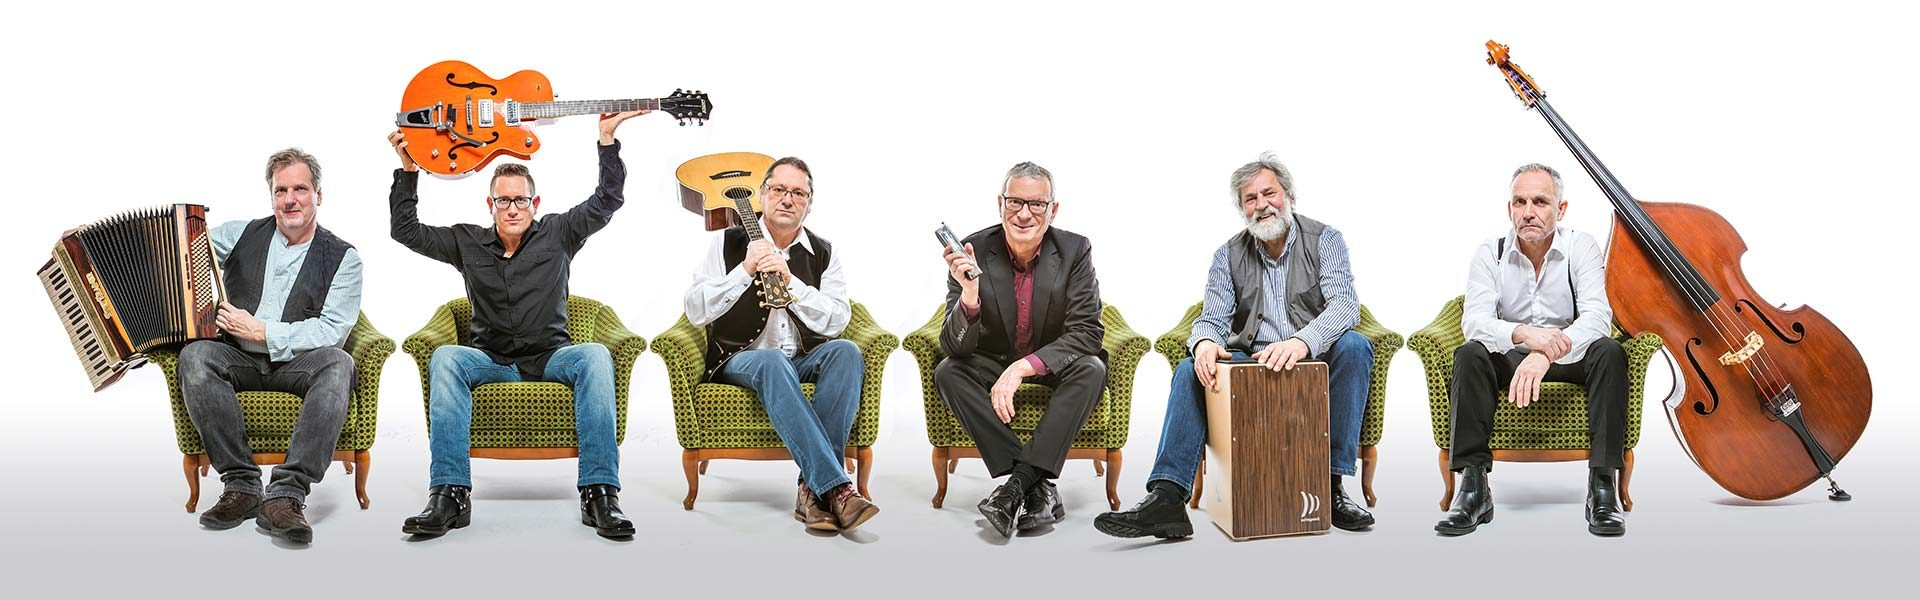 Band Hase & Co - Sepp Haselsteiner